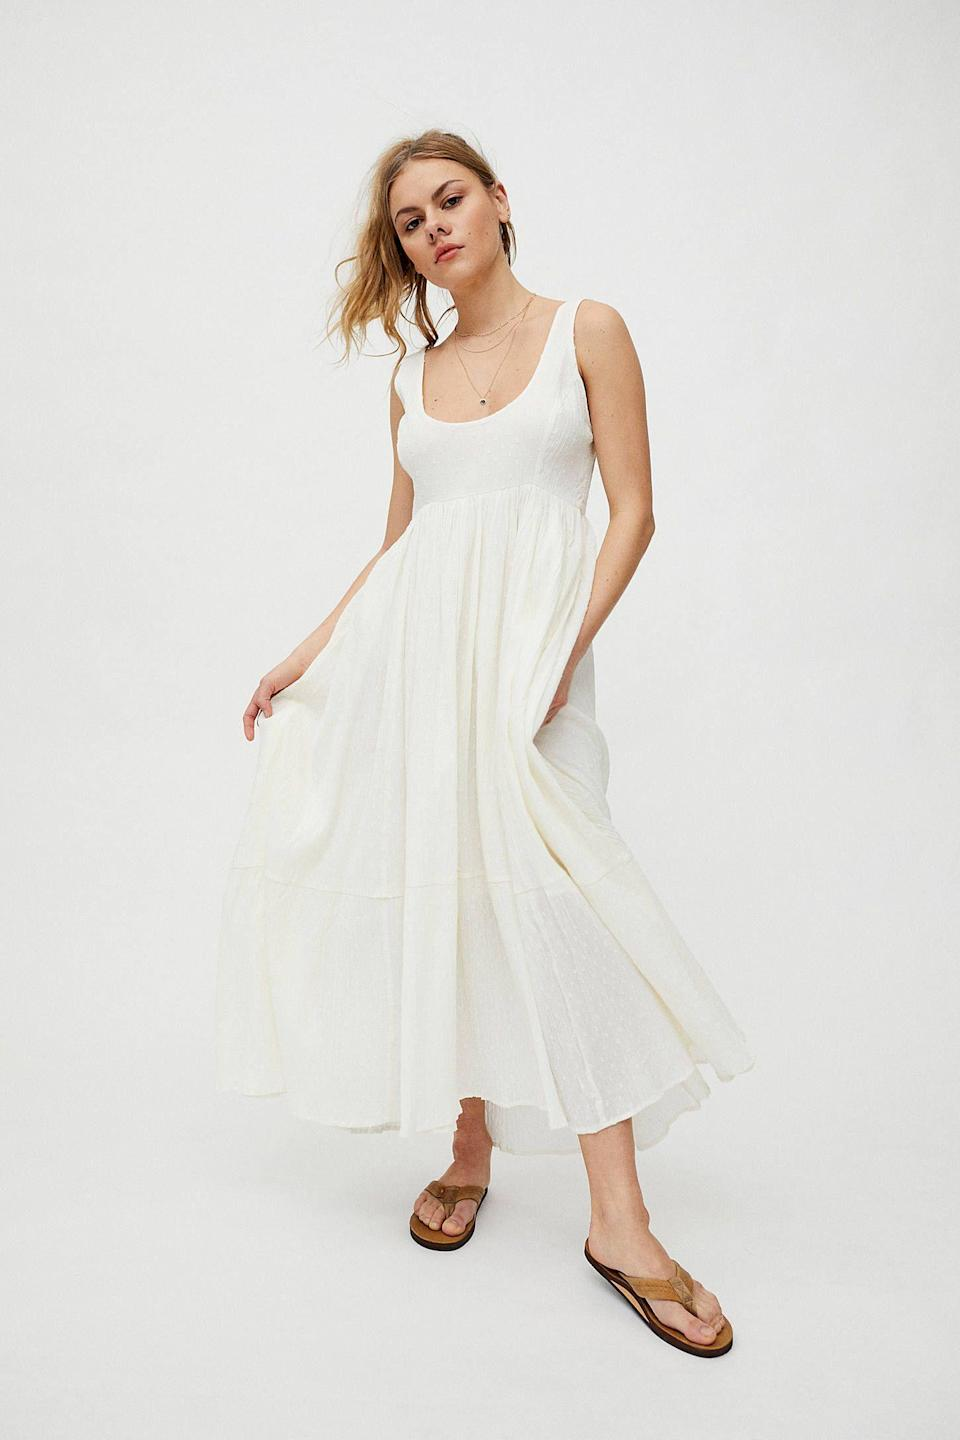 """<p><strong>Urban Outfitters</strong></p><p>urbanoutfitters.com</p><p><strong>$89.00</strong></p><p><a href=""""https://go.redirectingat.com?id=74968X1596630&url=https%3A%2F%2Fwww.urbanoutfitters.com%2Fshop%2Fuo-million-miles-maxi-dress&sref=https%3A%2F%2Fwww.thepioneerwoman.com%2Ffashion-style%2Fg36269895%2Fcute-summer-dresses%2F"""" rel=""""nofollow noopener"""" target=""""_blank"""" data-ylk=""""slk:Shop Now"""" class=""""link rapid-noclick-resp"""">Shop Now</a></p><p>Summer is LWD (little white dress) season! Go for a simple maxi like this that you can dress up or down. It's the perfect blank slate. </p>"""